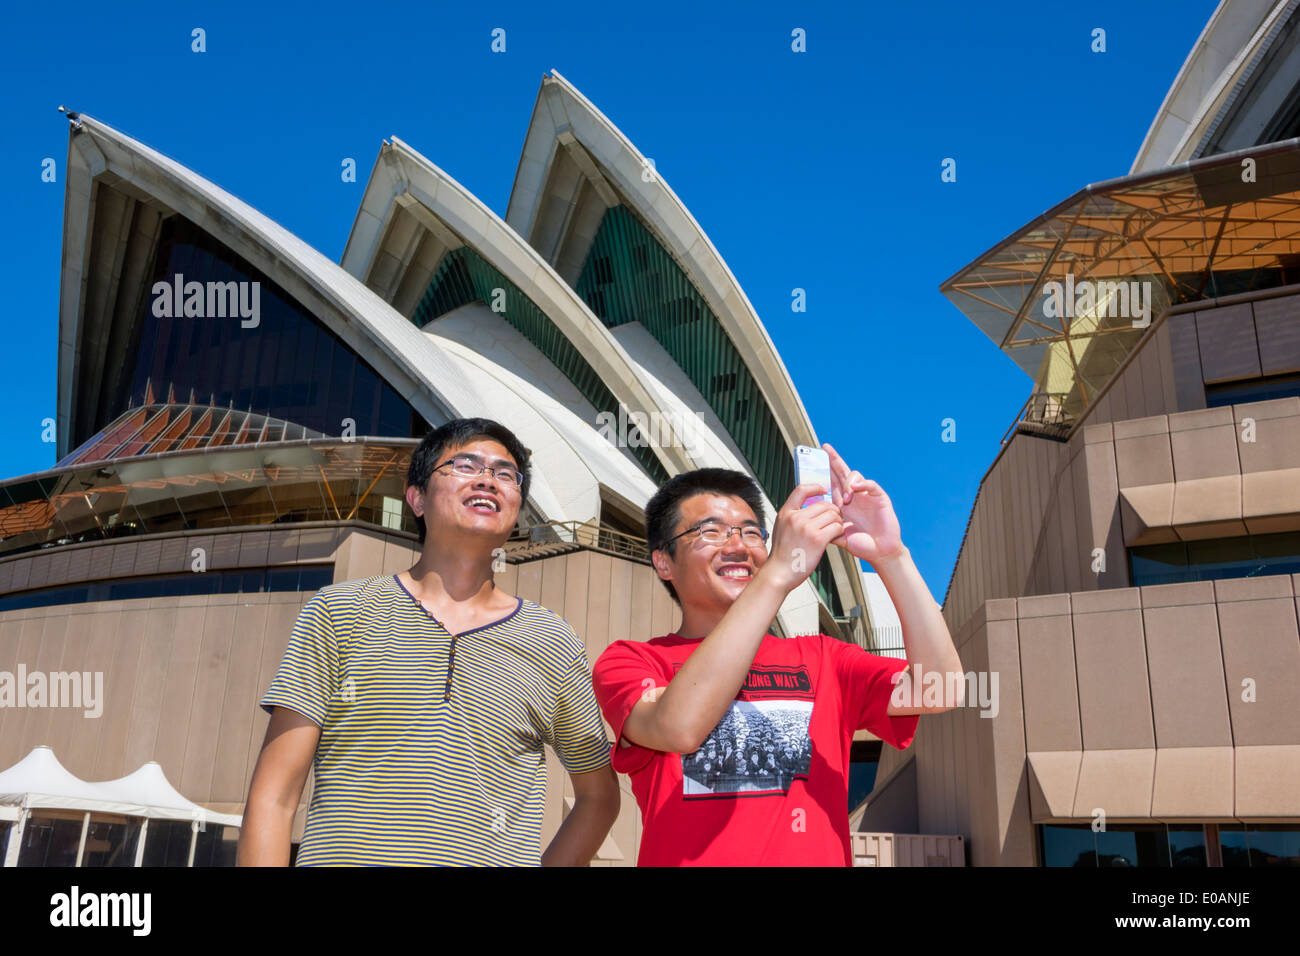 House design nsw - Stock Photo Sydney Australia Nsw New South Wales Sydney Harbour Harbor Sydney Opera House Design Shell Roof Ceramic Tile Asian Man Friend Taking Picture